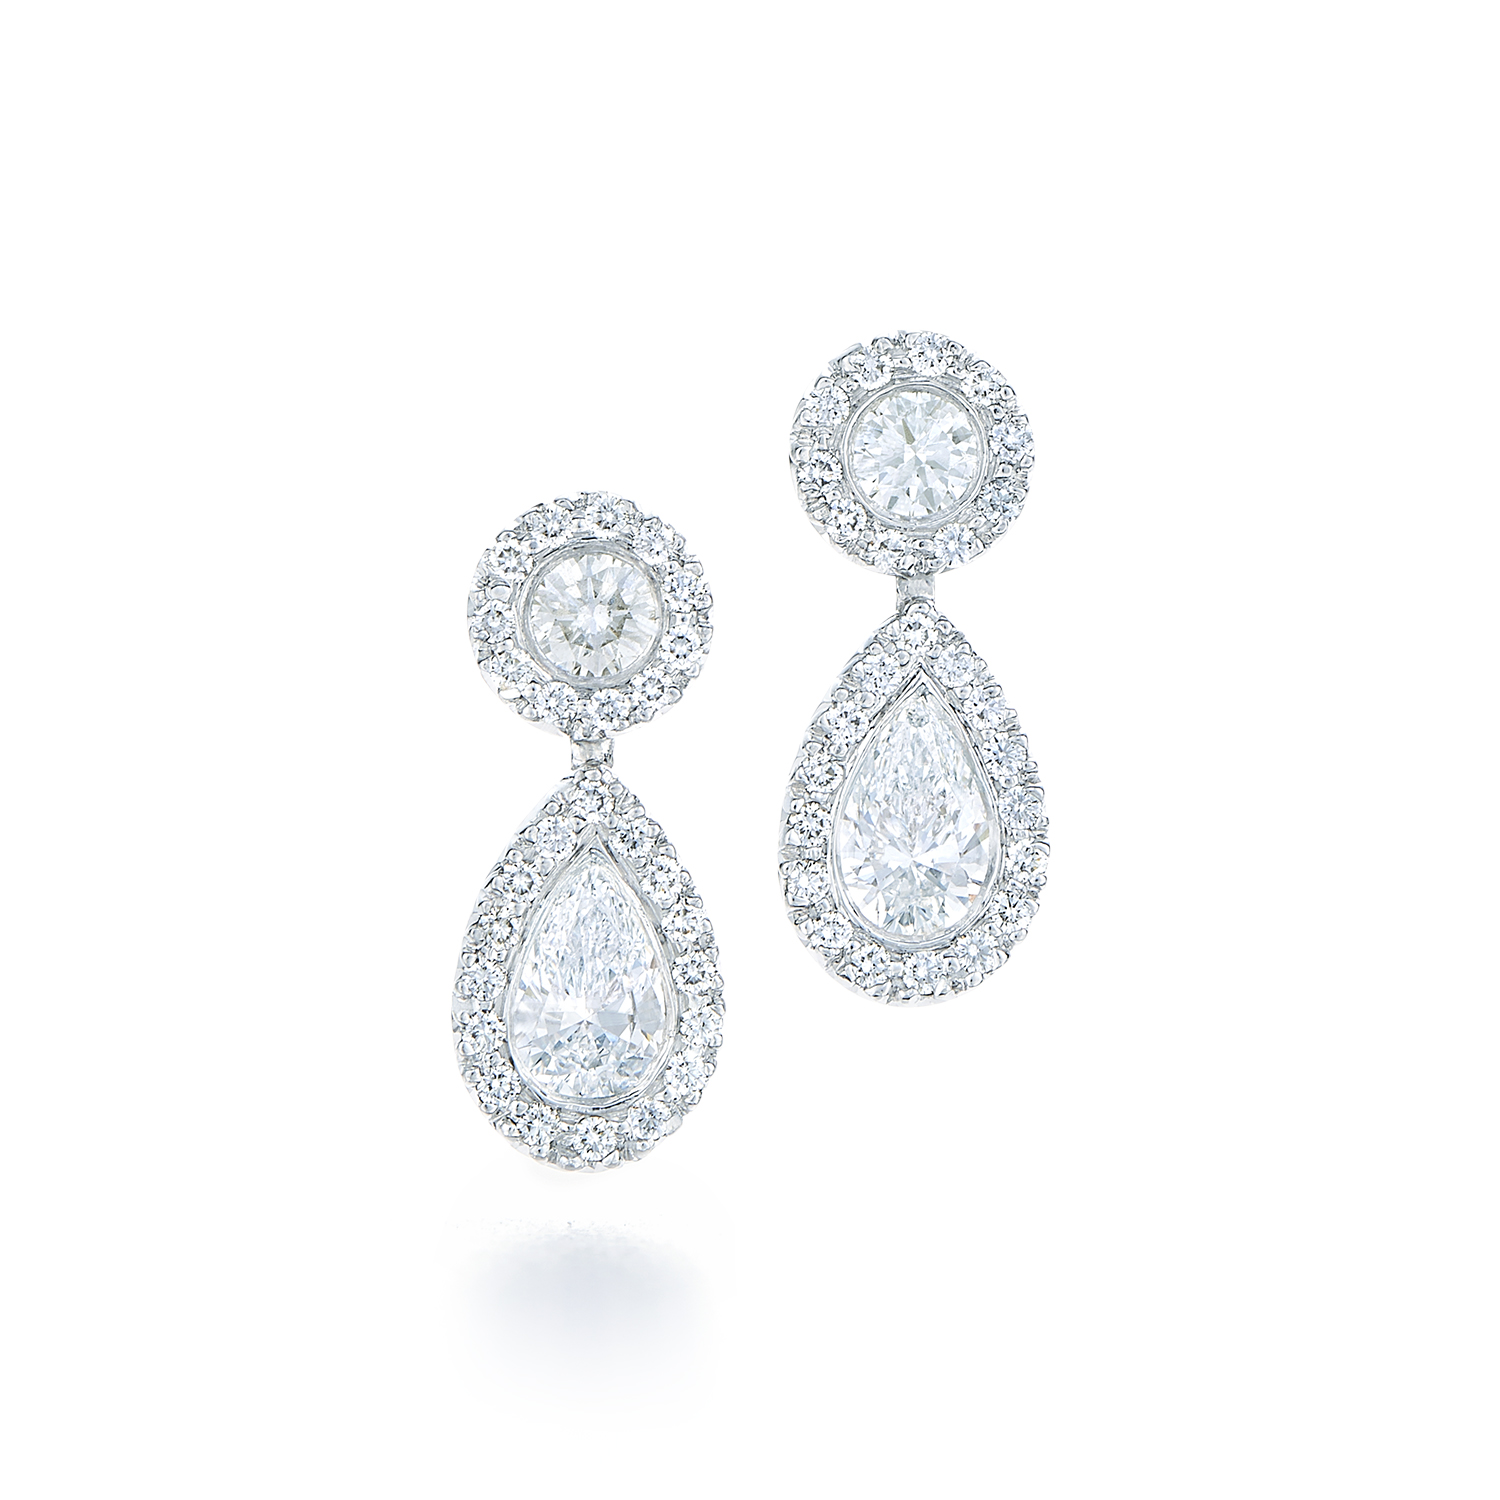 diamond earring pamona pear earrings demeter rectangular shape halo white